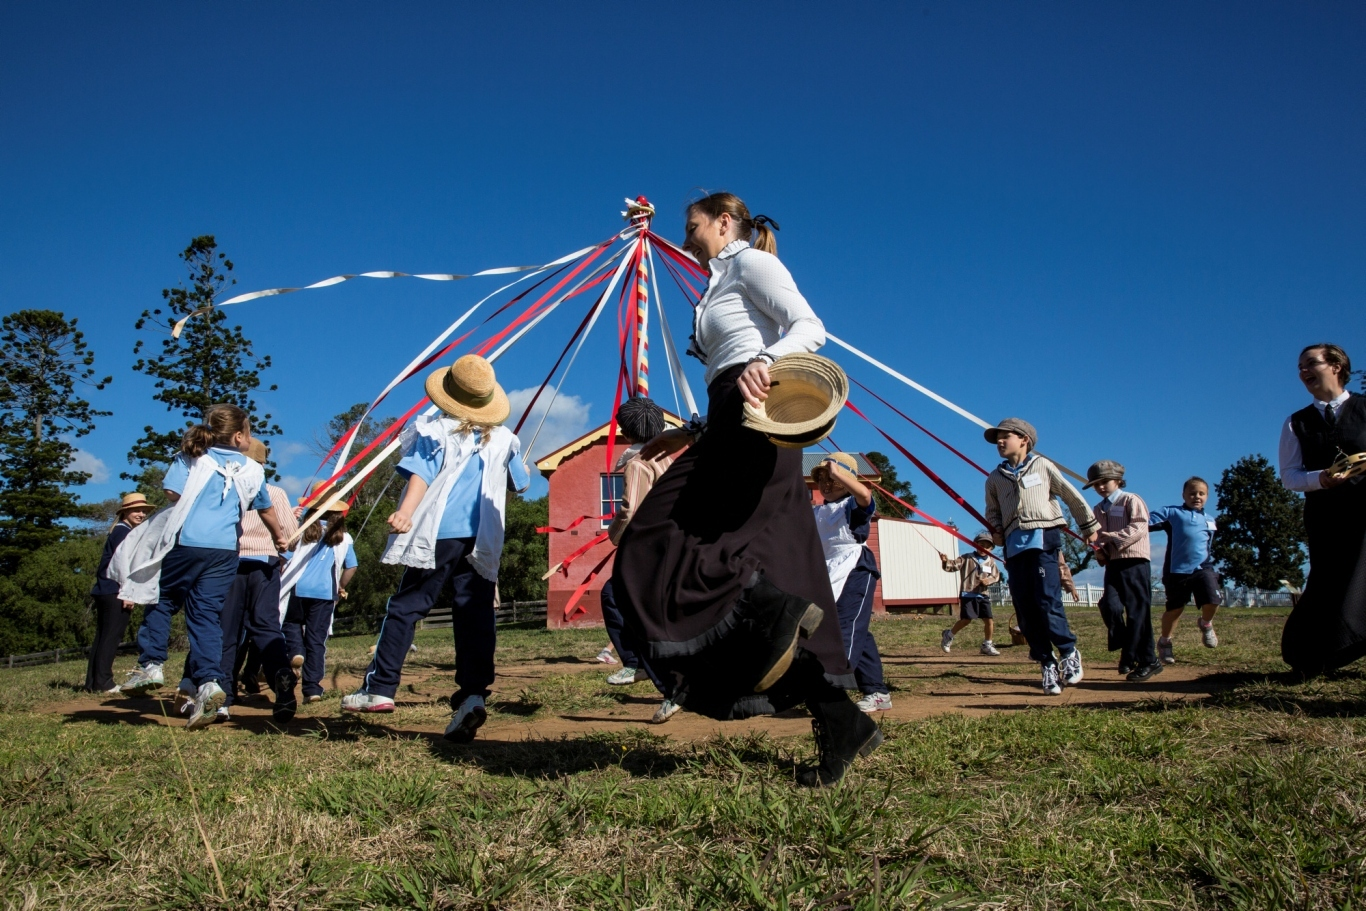 Students and adults dancing around maypole